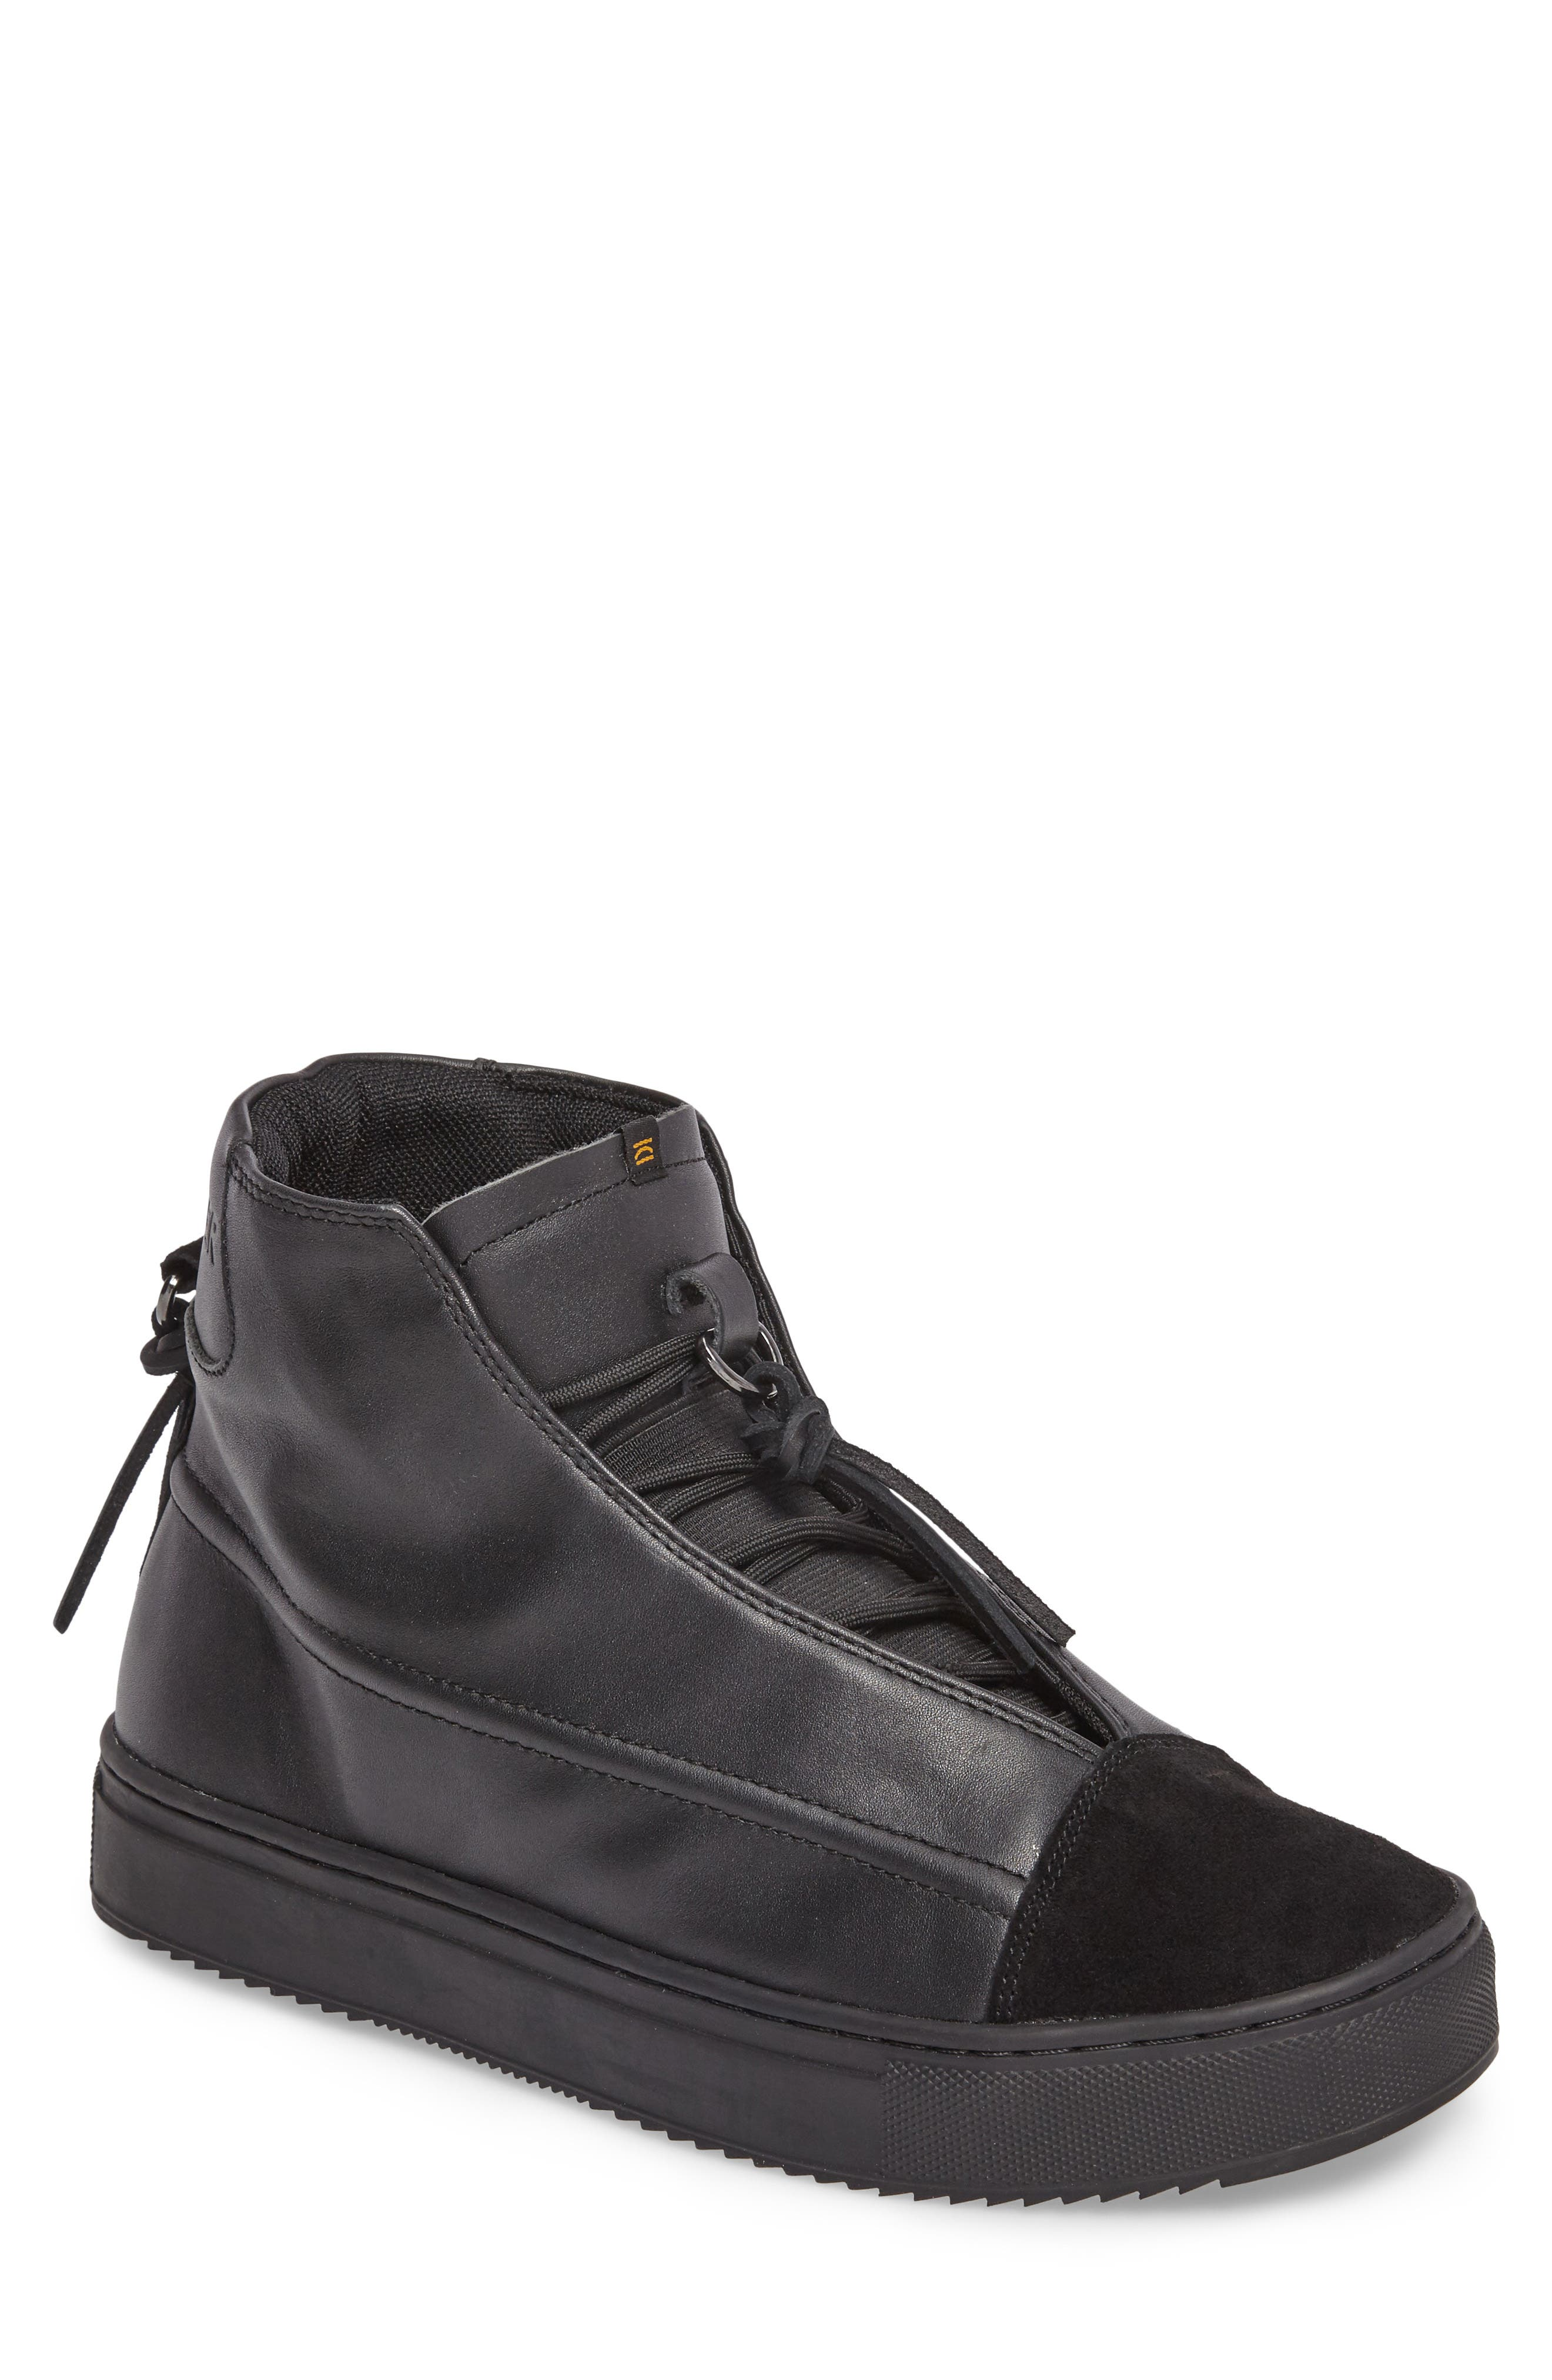 Alternate Image 1 Selected - Clearweather Sidney High Top Sneaker (Men)